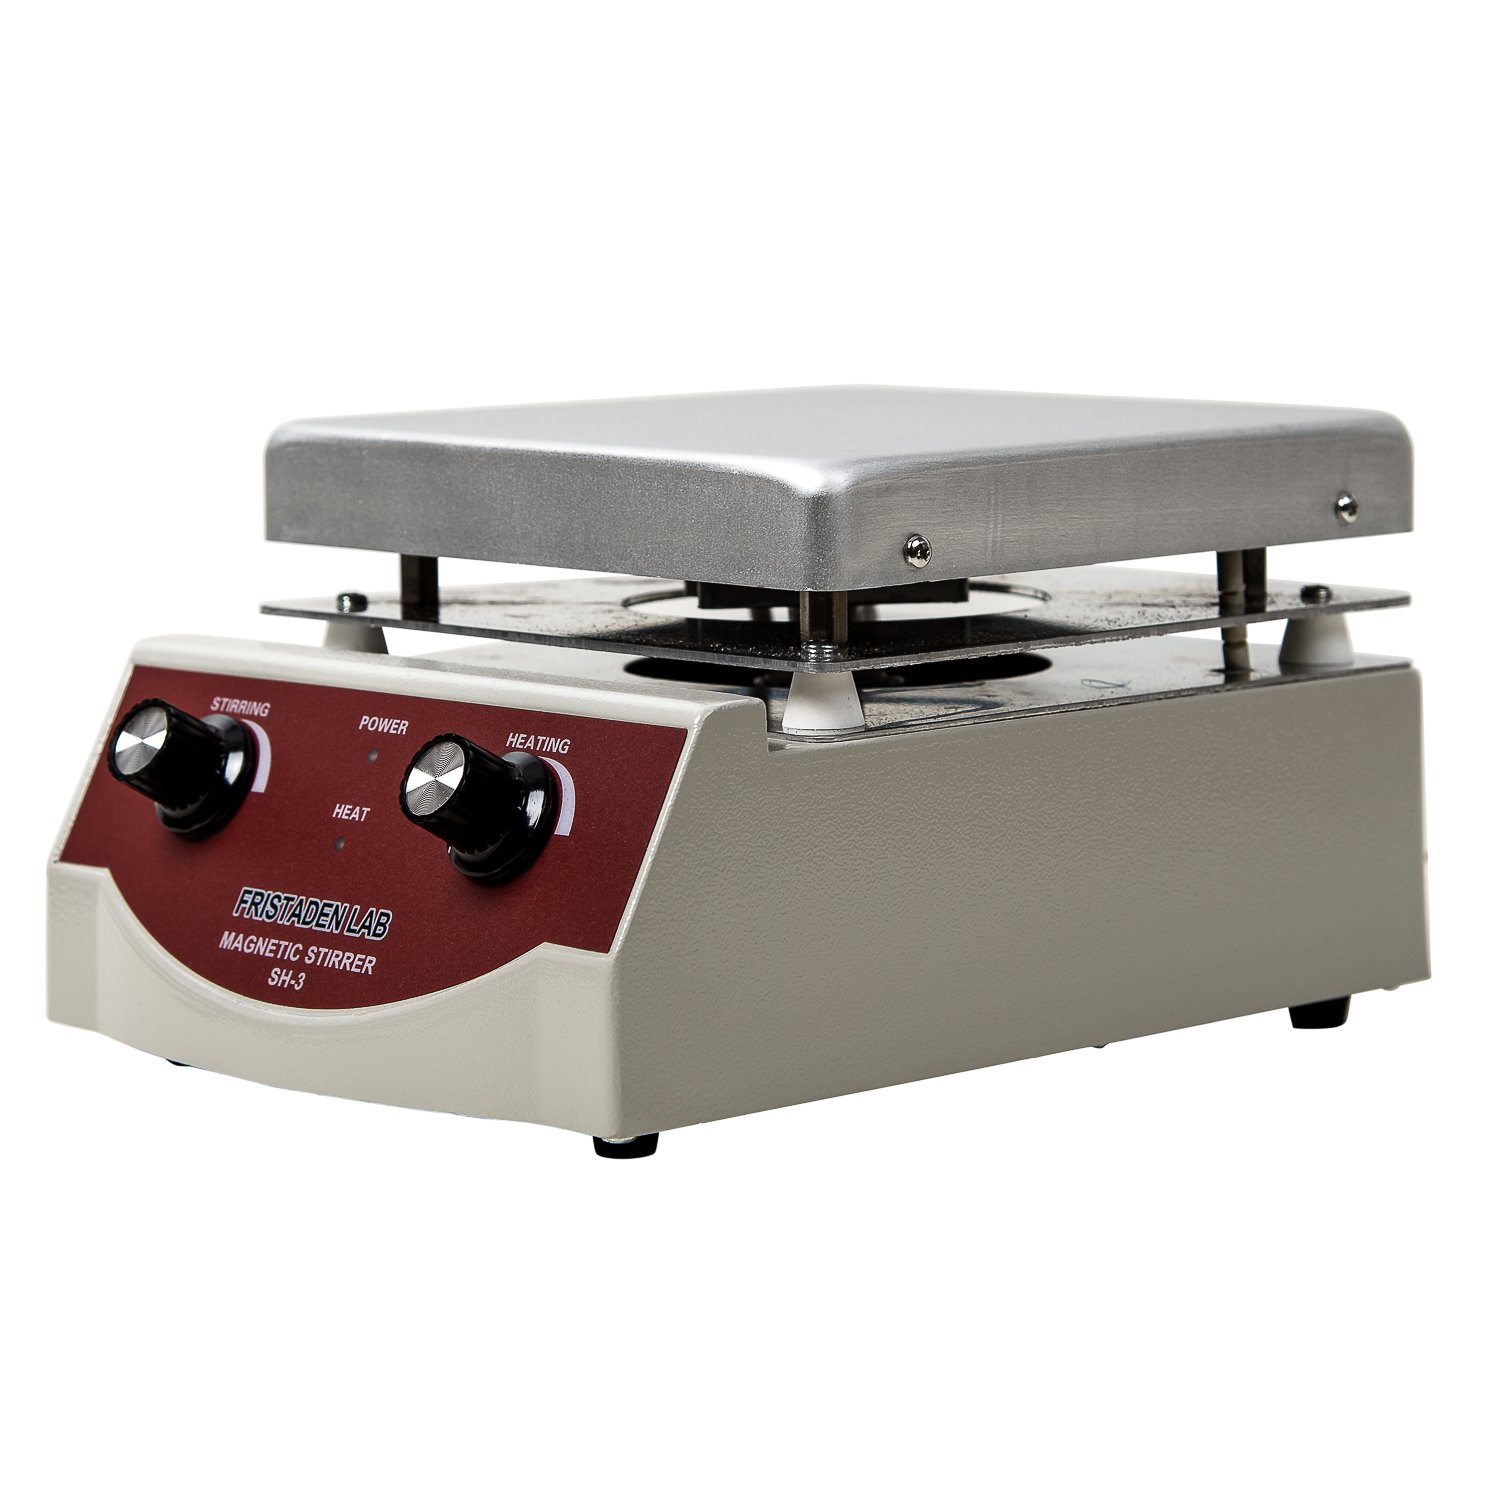 Fristaden Lab SH-3 Magnetic Stirrer Hot Plate, Stir Plate, Magnetic Mixer Dual Controls for Heating and Stirring 3,000mL, 100~1600rpm, 500W, 350°C